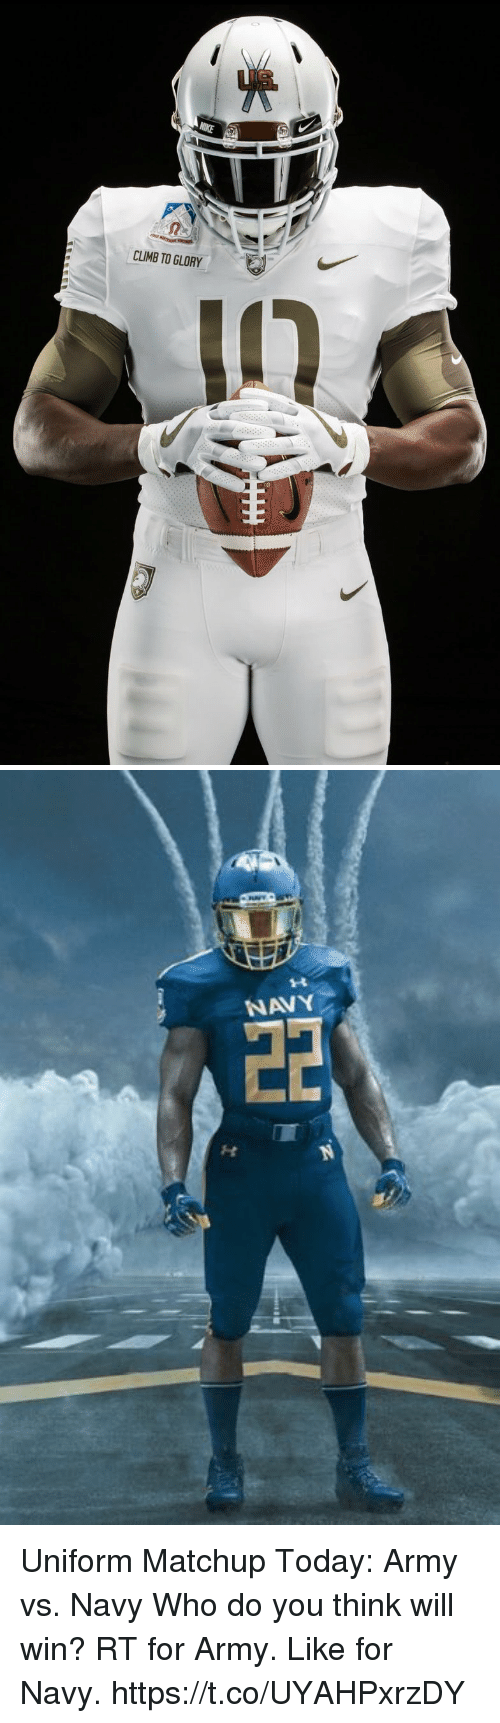 Memes, Army, and Navy: CLIMB TO GLORY   NAVY Uniform Matchup Today: Army vs. Navy Who do you think will win? RT for Army. Like for Navy. https://t.co/UYAHPxrzDY